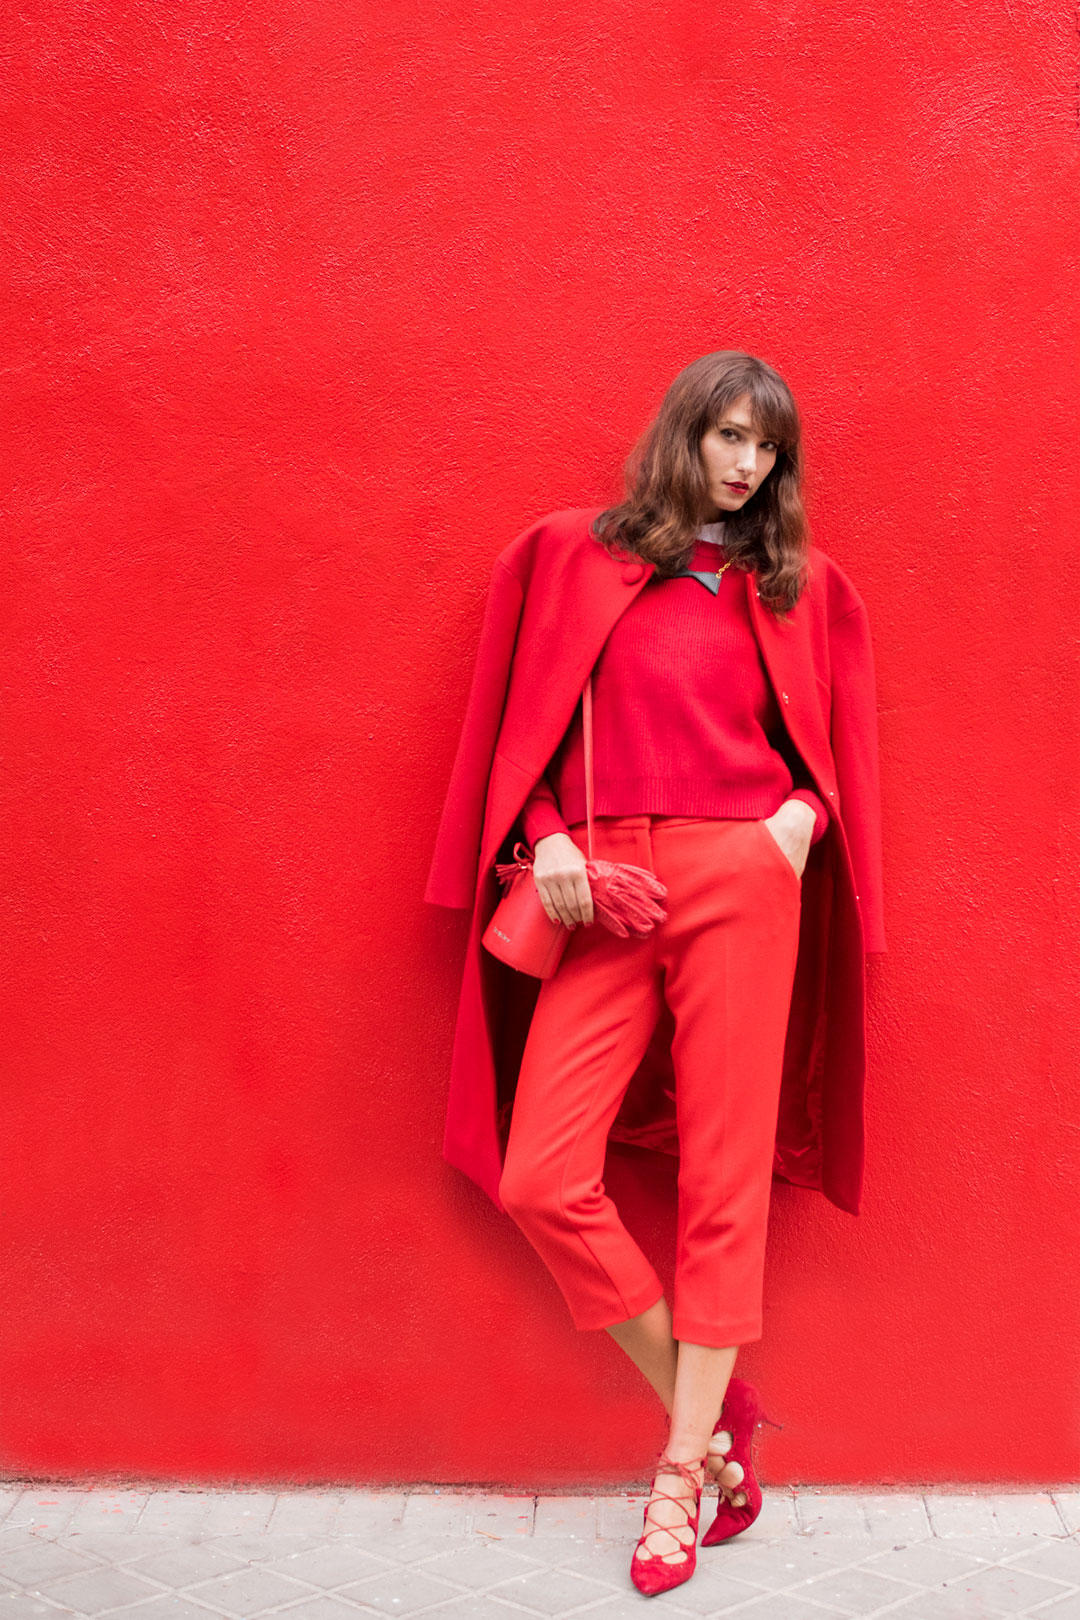 red-bow-tie-guerlain-streetstyle-mitmeblog-web-05